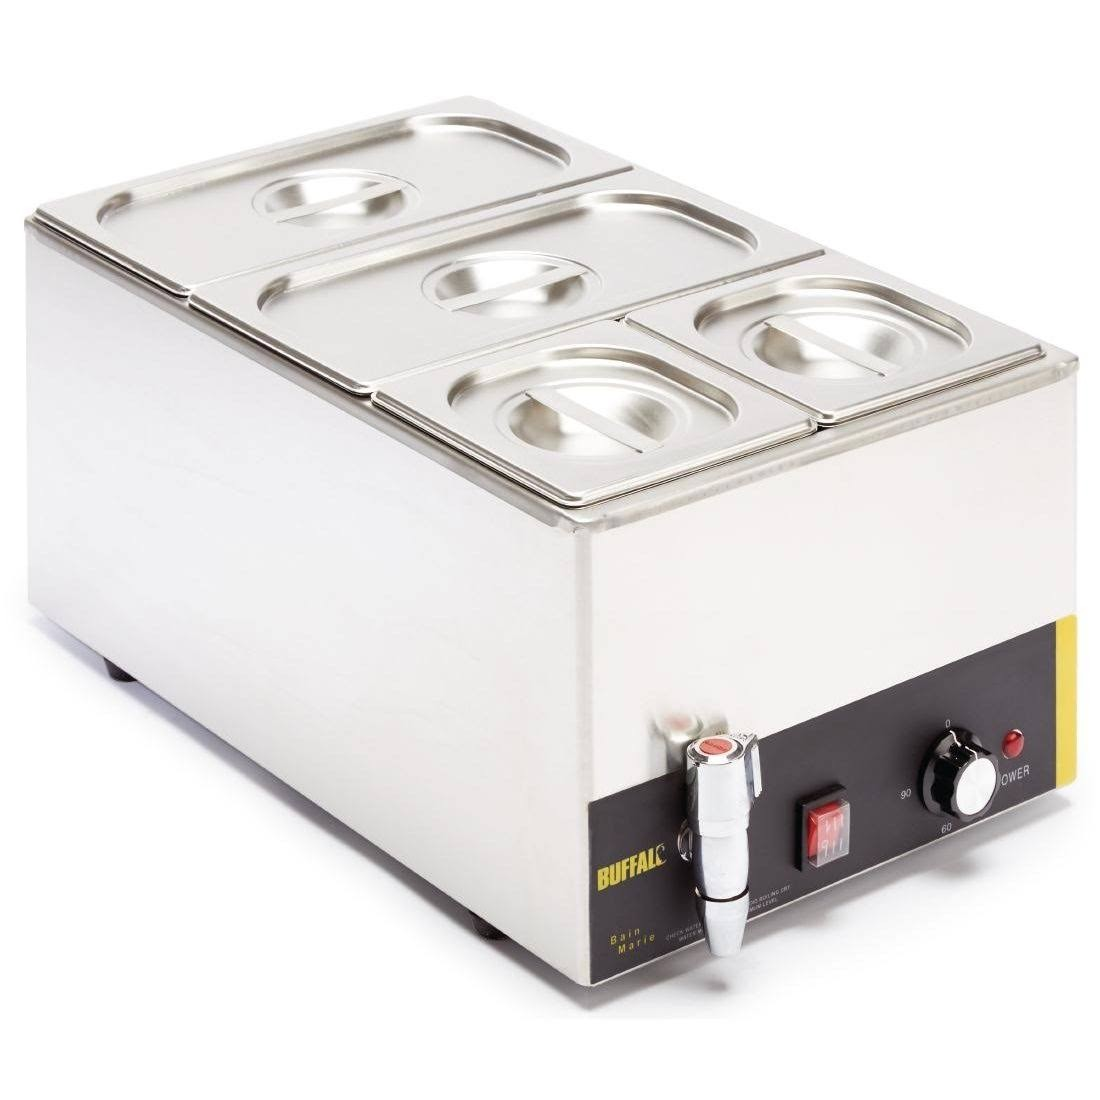 Buffalo S047 Wet Heat Bain Marie with Tap and Pans